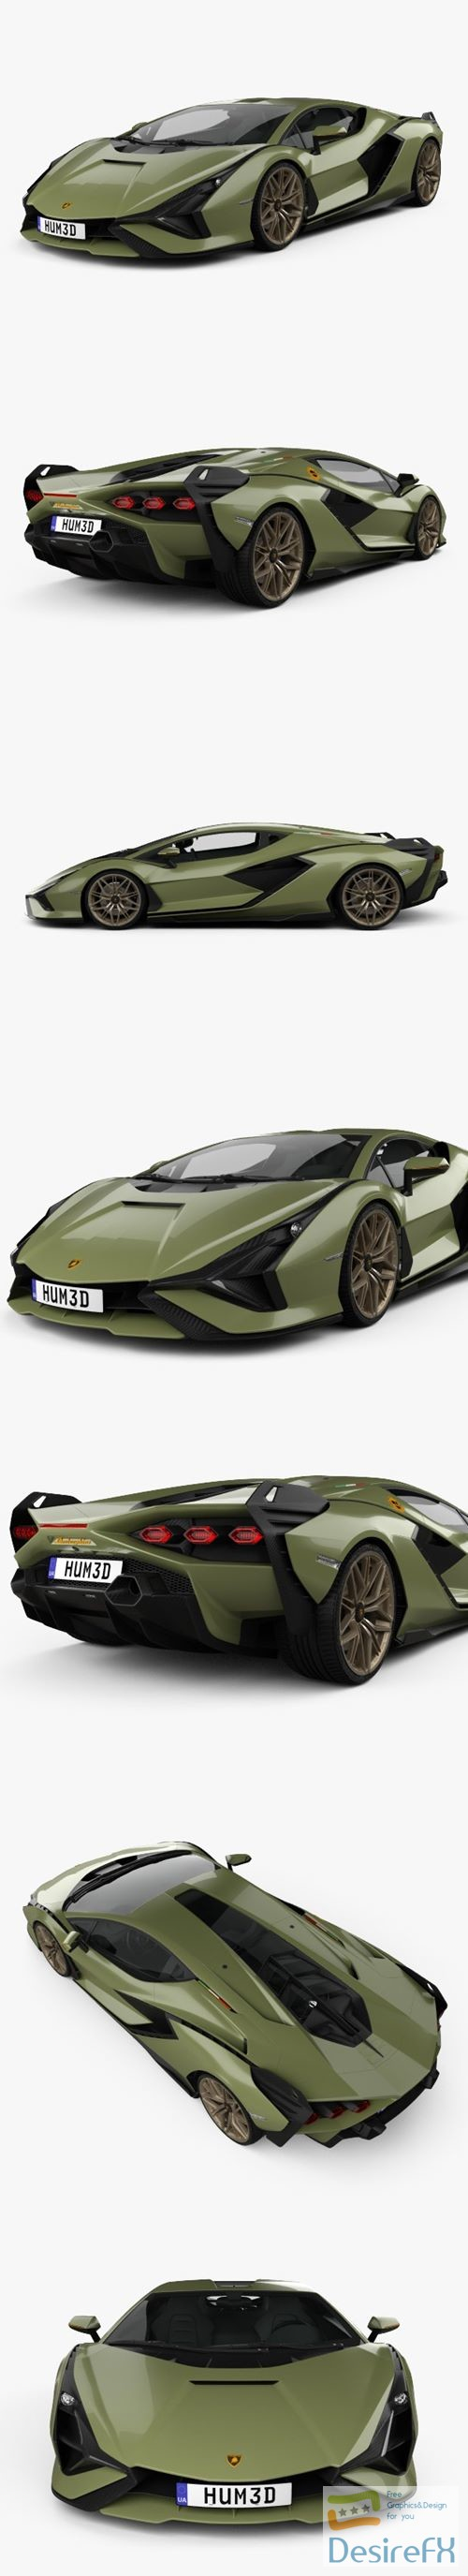 3d-models - Lamborghini Sian 2020 3D Model